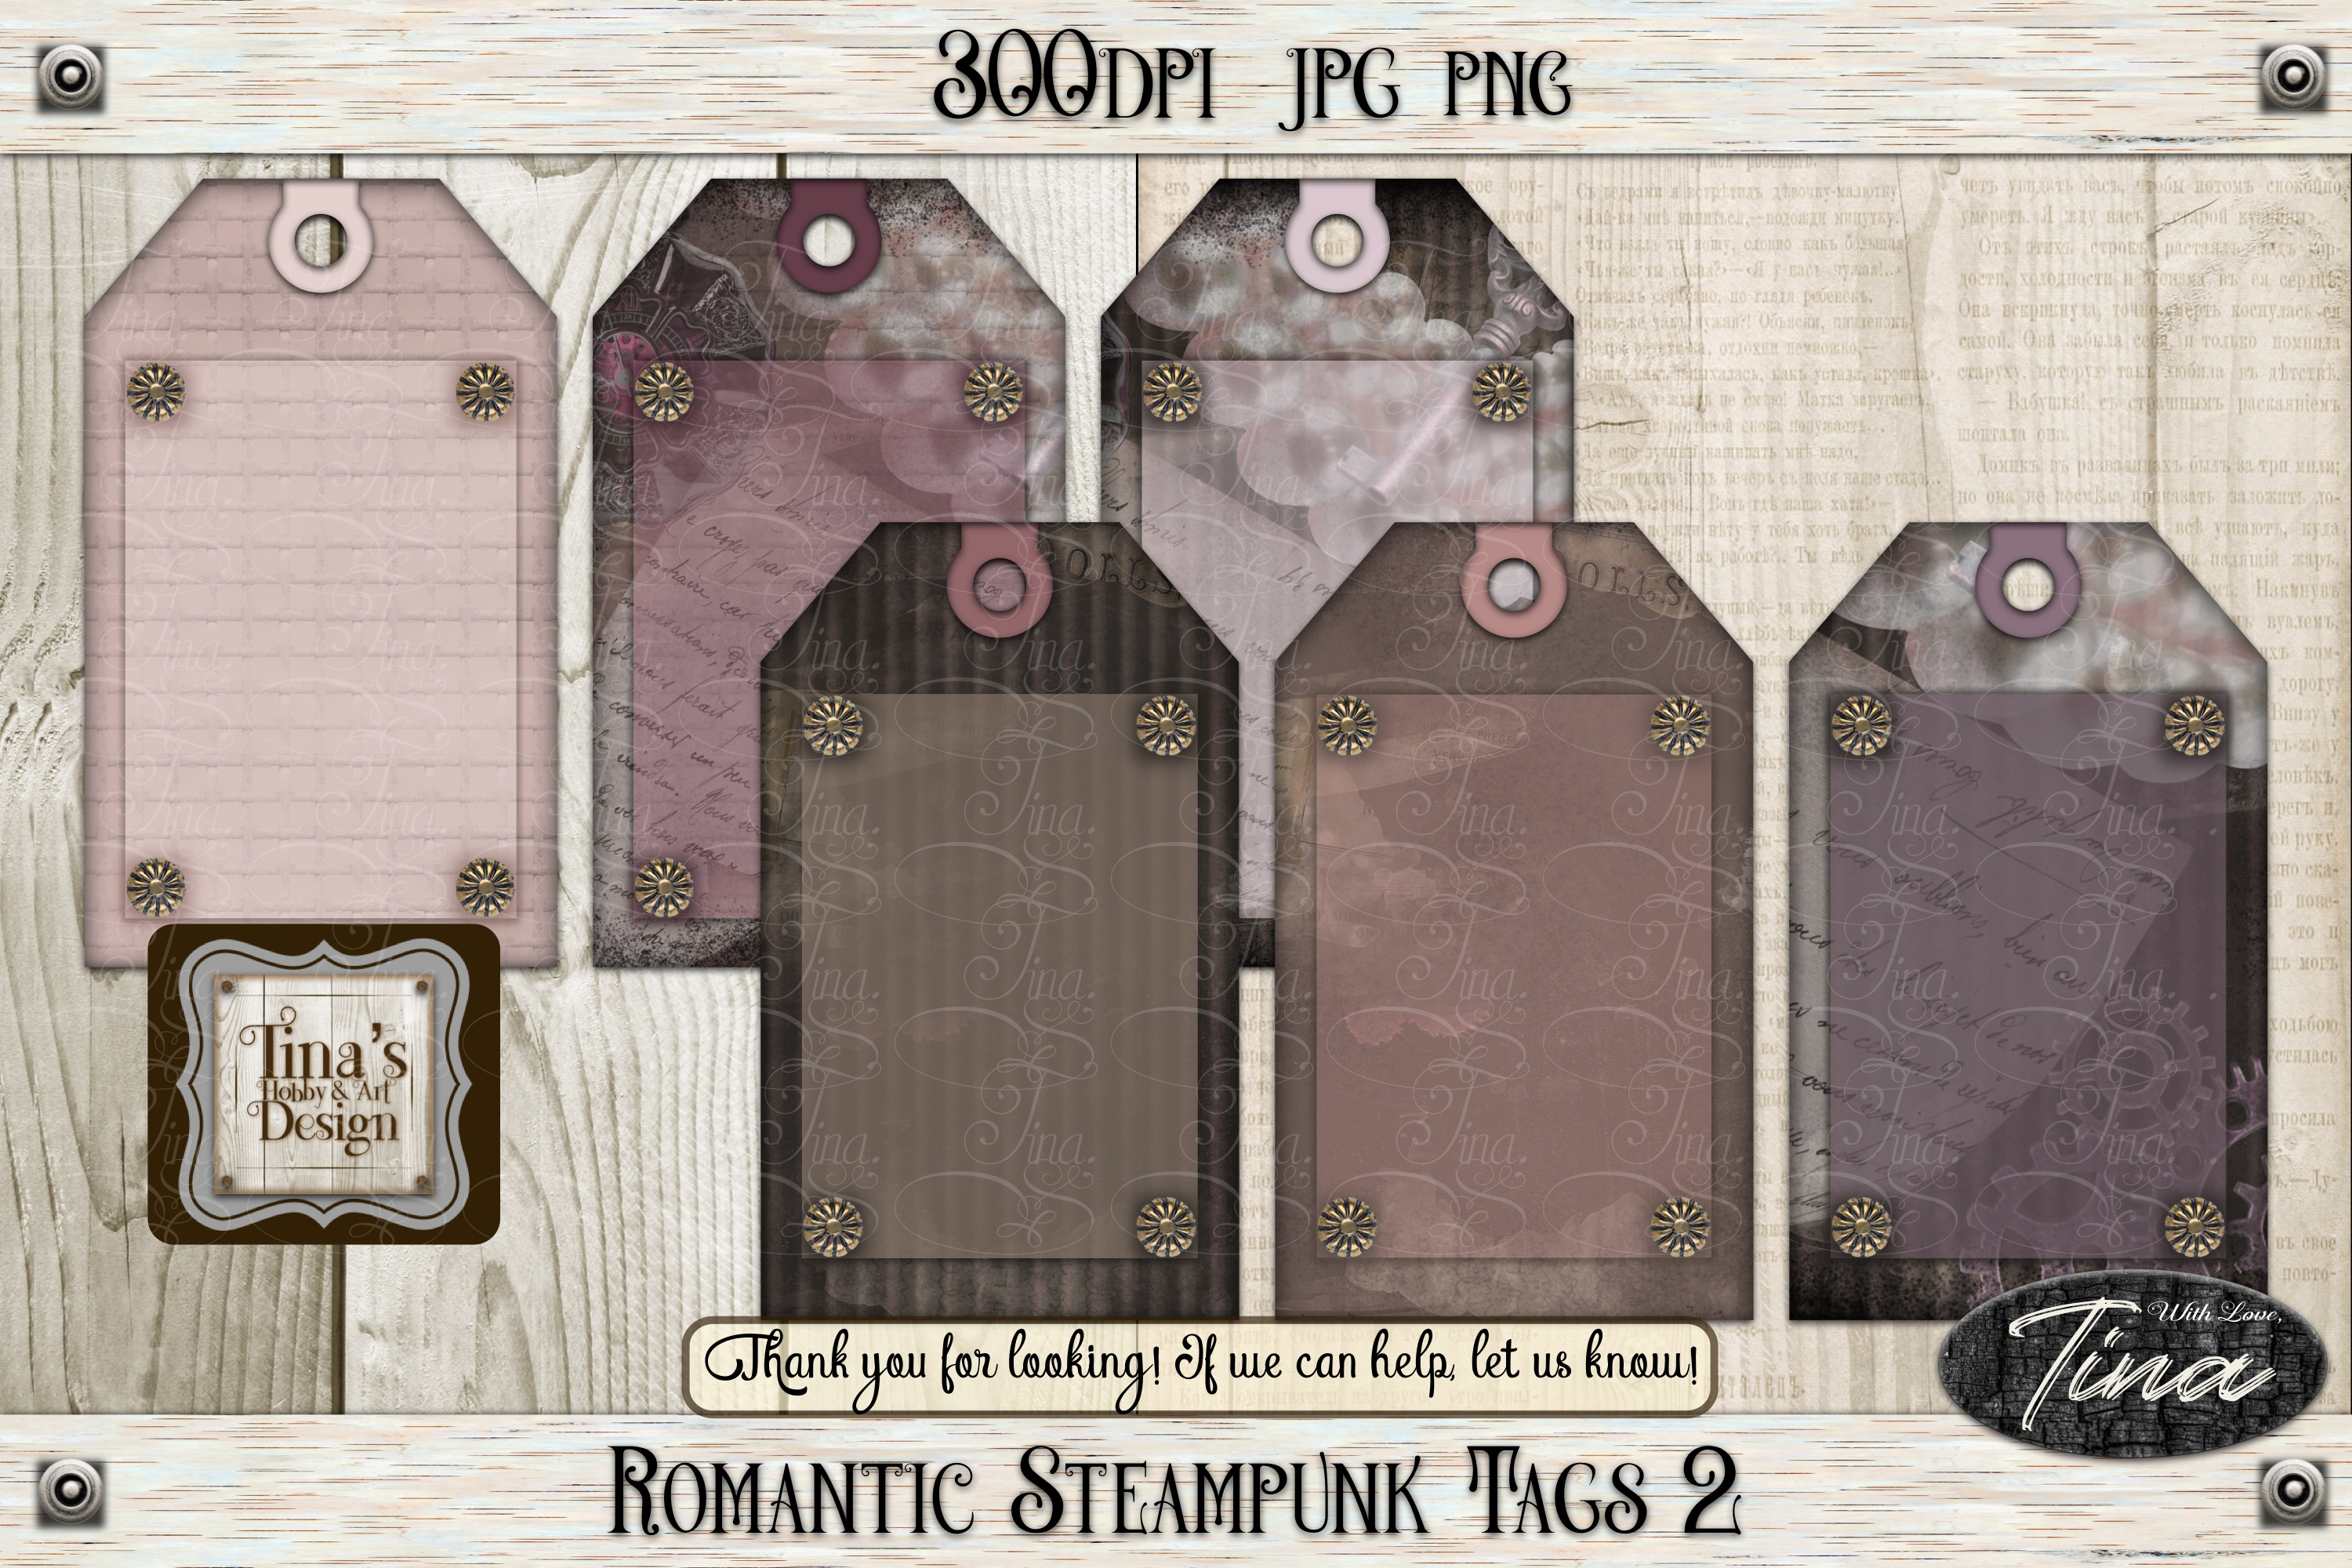 Romantic Steampunk 8.5x11 Collage Mauve Grunge 101918RS8 example image 8